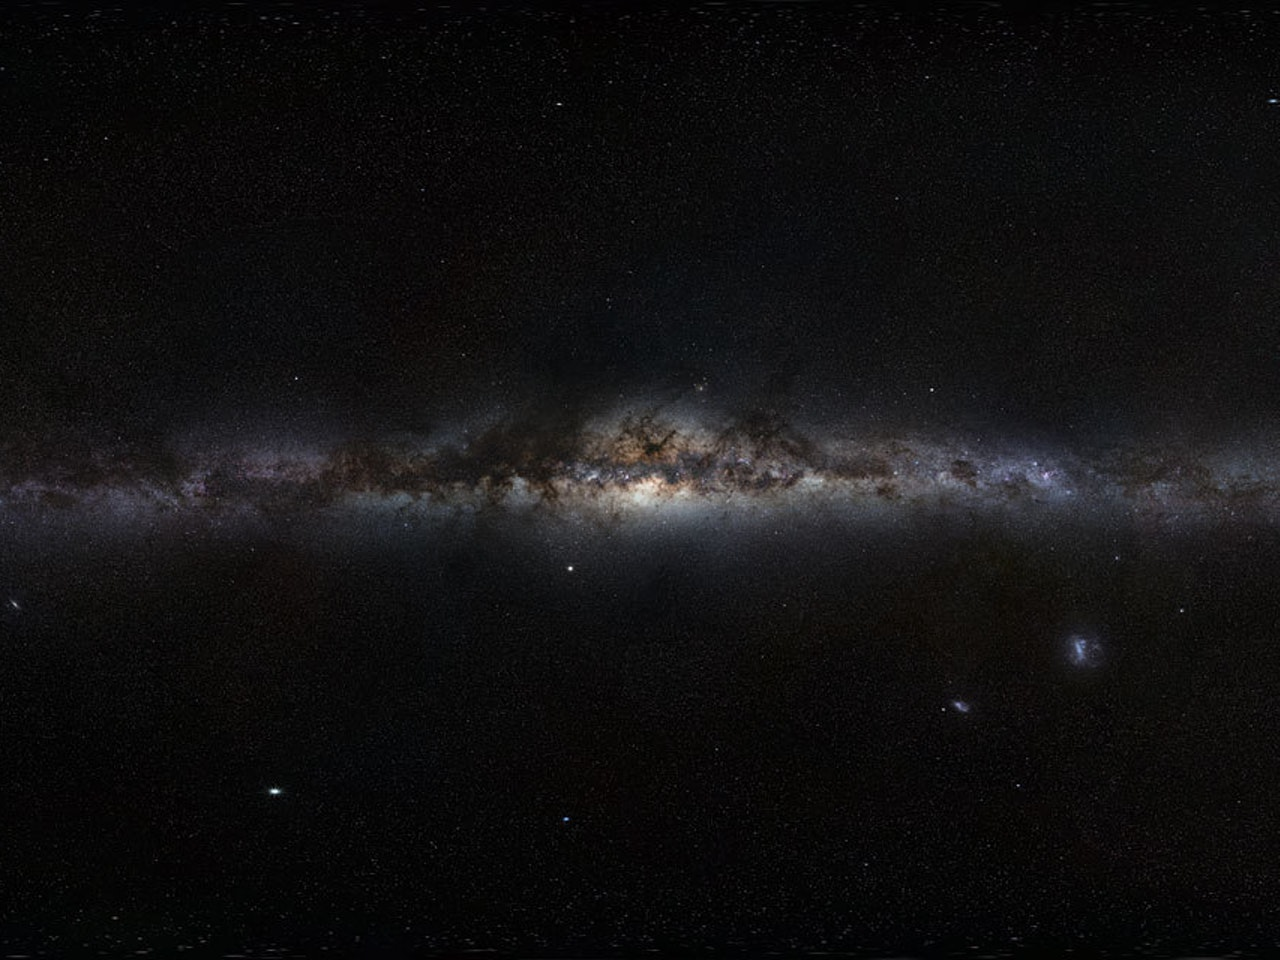 A view of the plane of our Milky Way Galaxy, seen edge-on from our perspective on Earth, as if we were looking at the Milky Way from the outside.